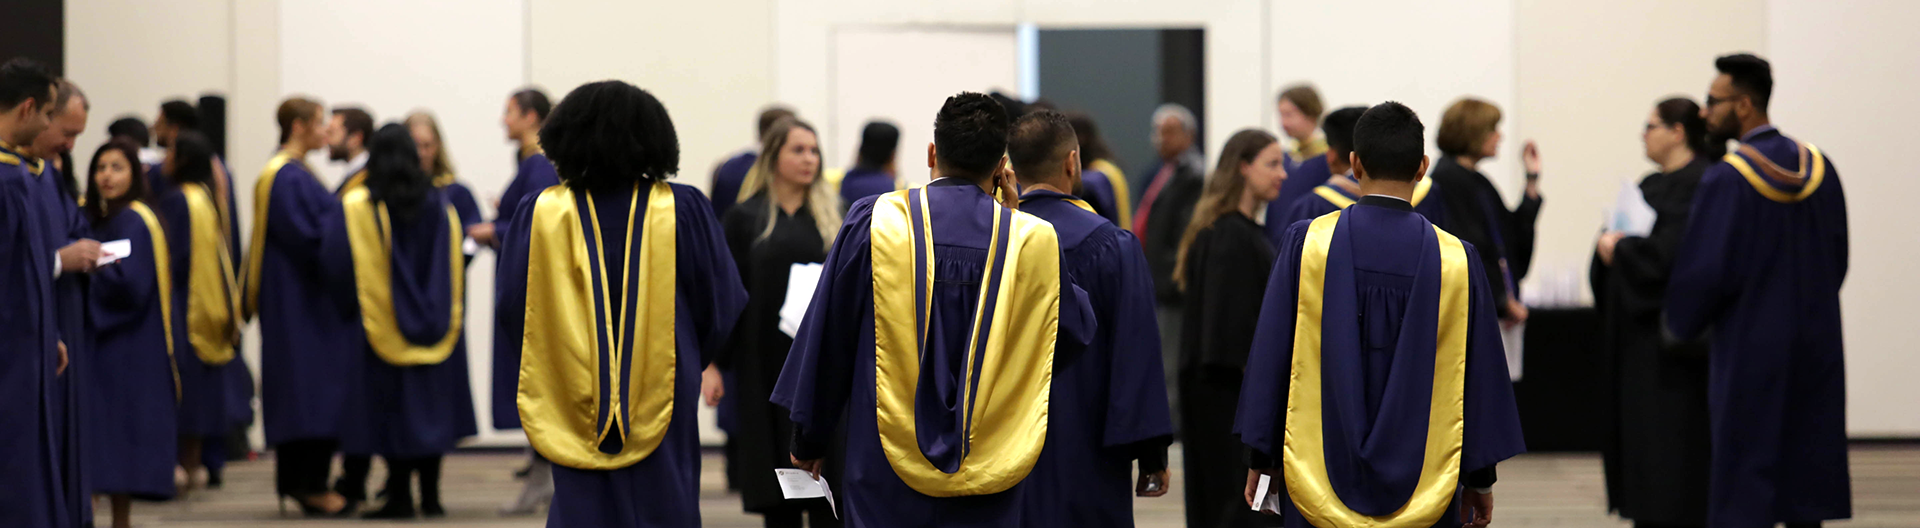 Students in graducation robes walking towards an open door